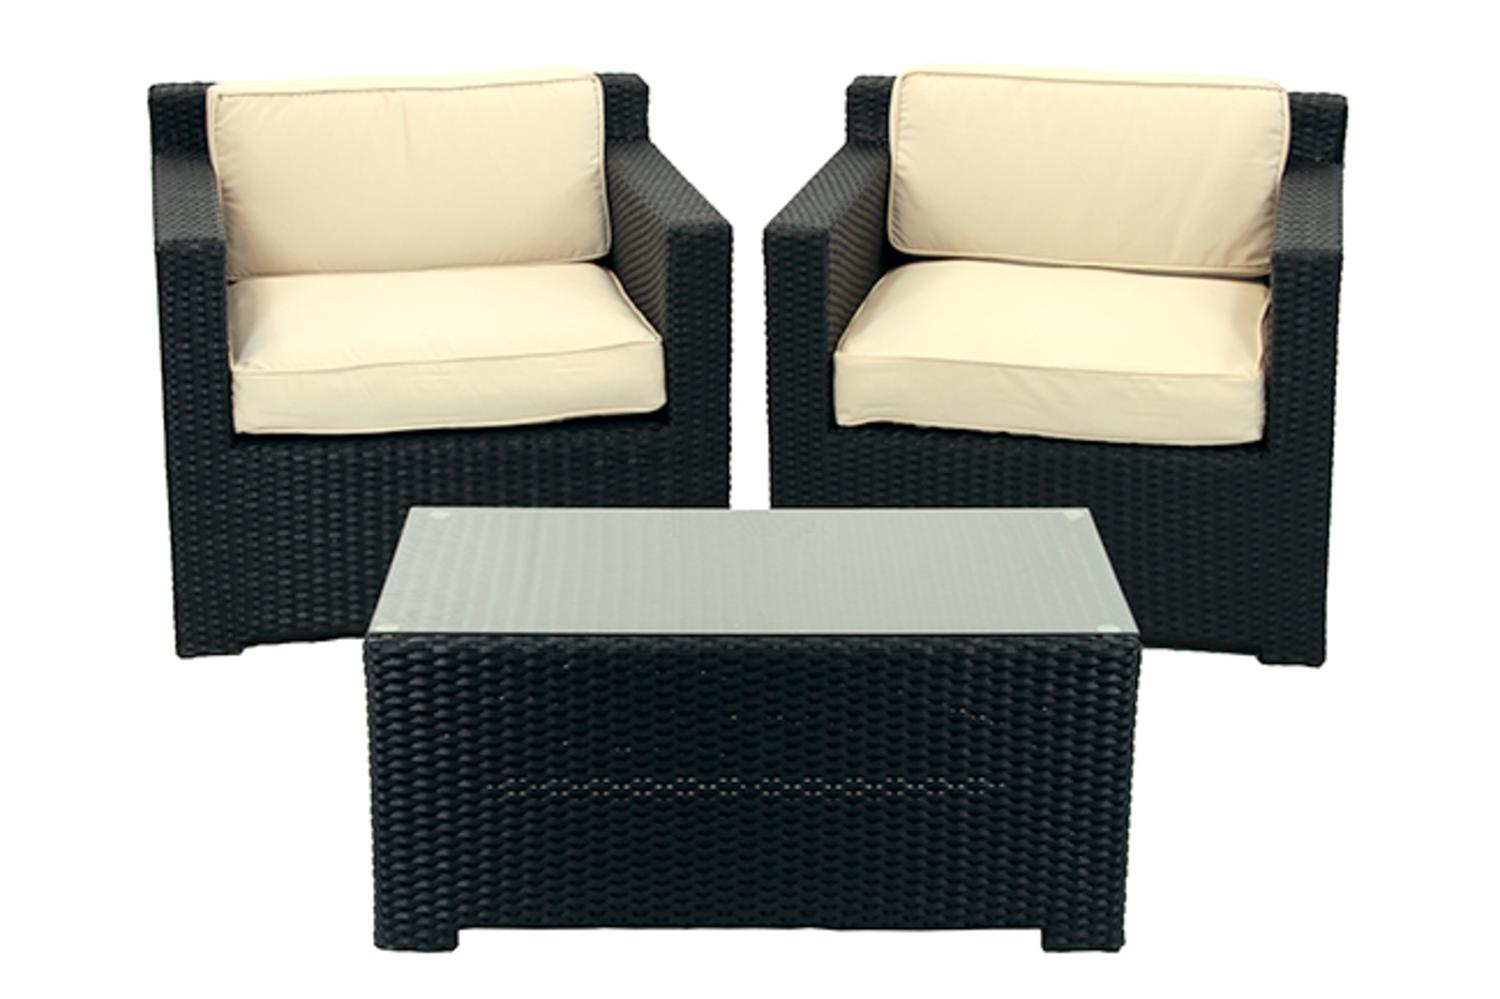 3piece black resin wicker outdoor patio furniture set beige cushions walmartcom - Resin Wicker Patio Furniture